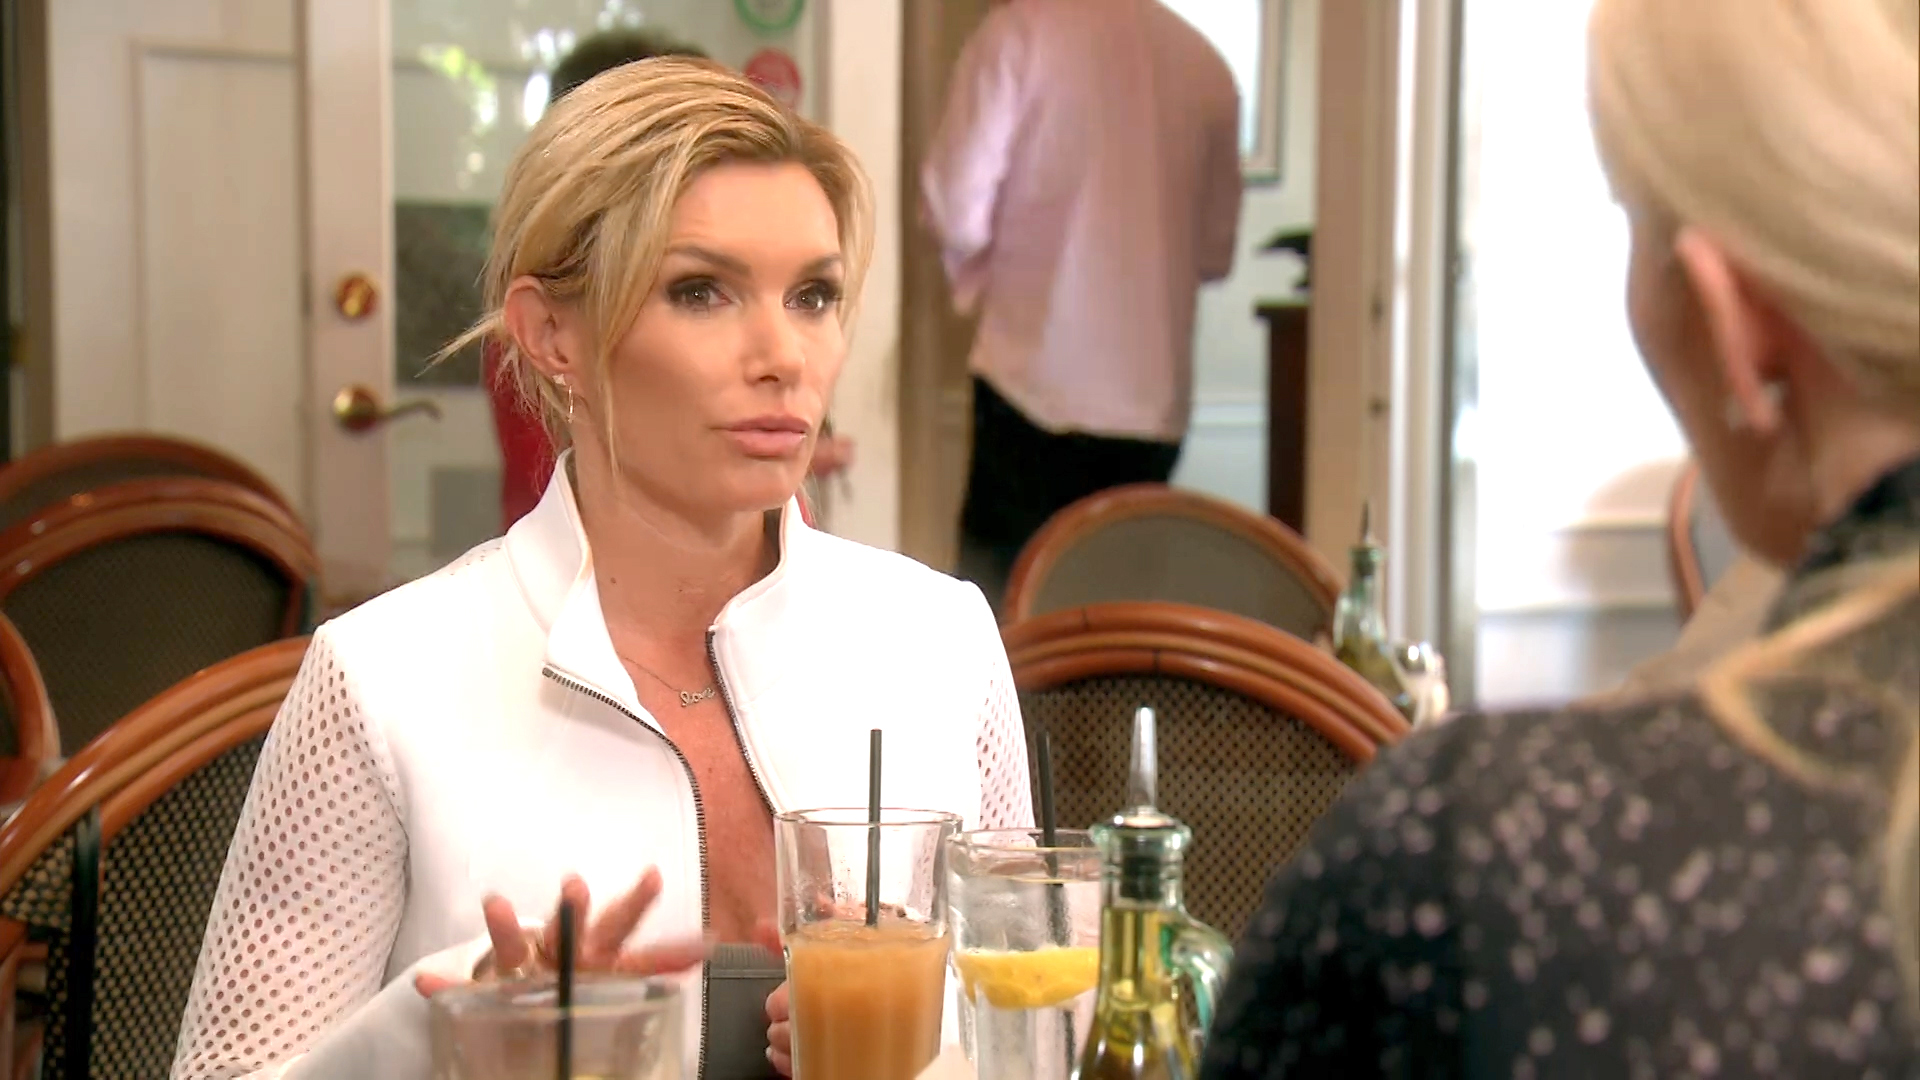 Meet the new real housewives of beverly hills star, eden sassoon